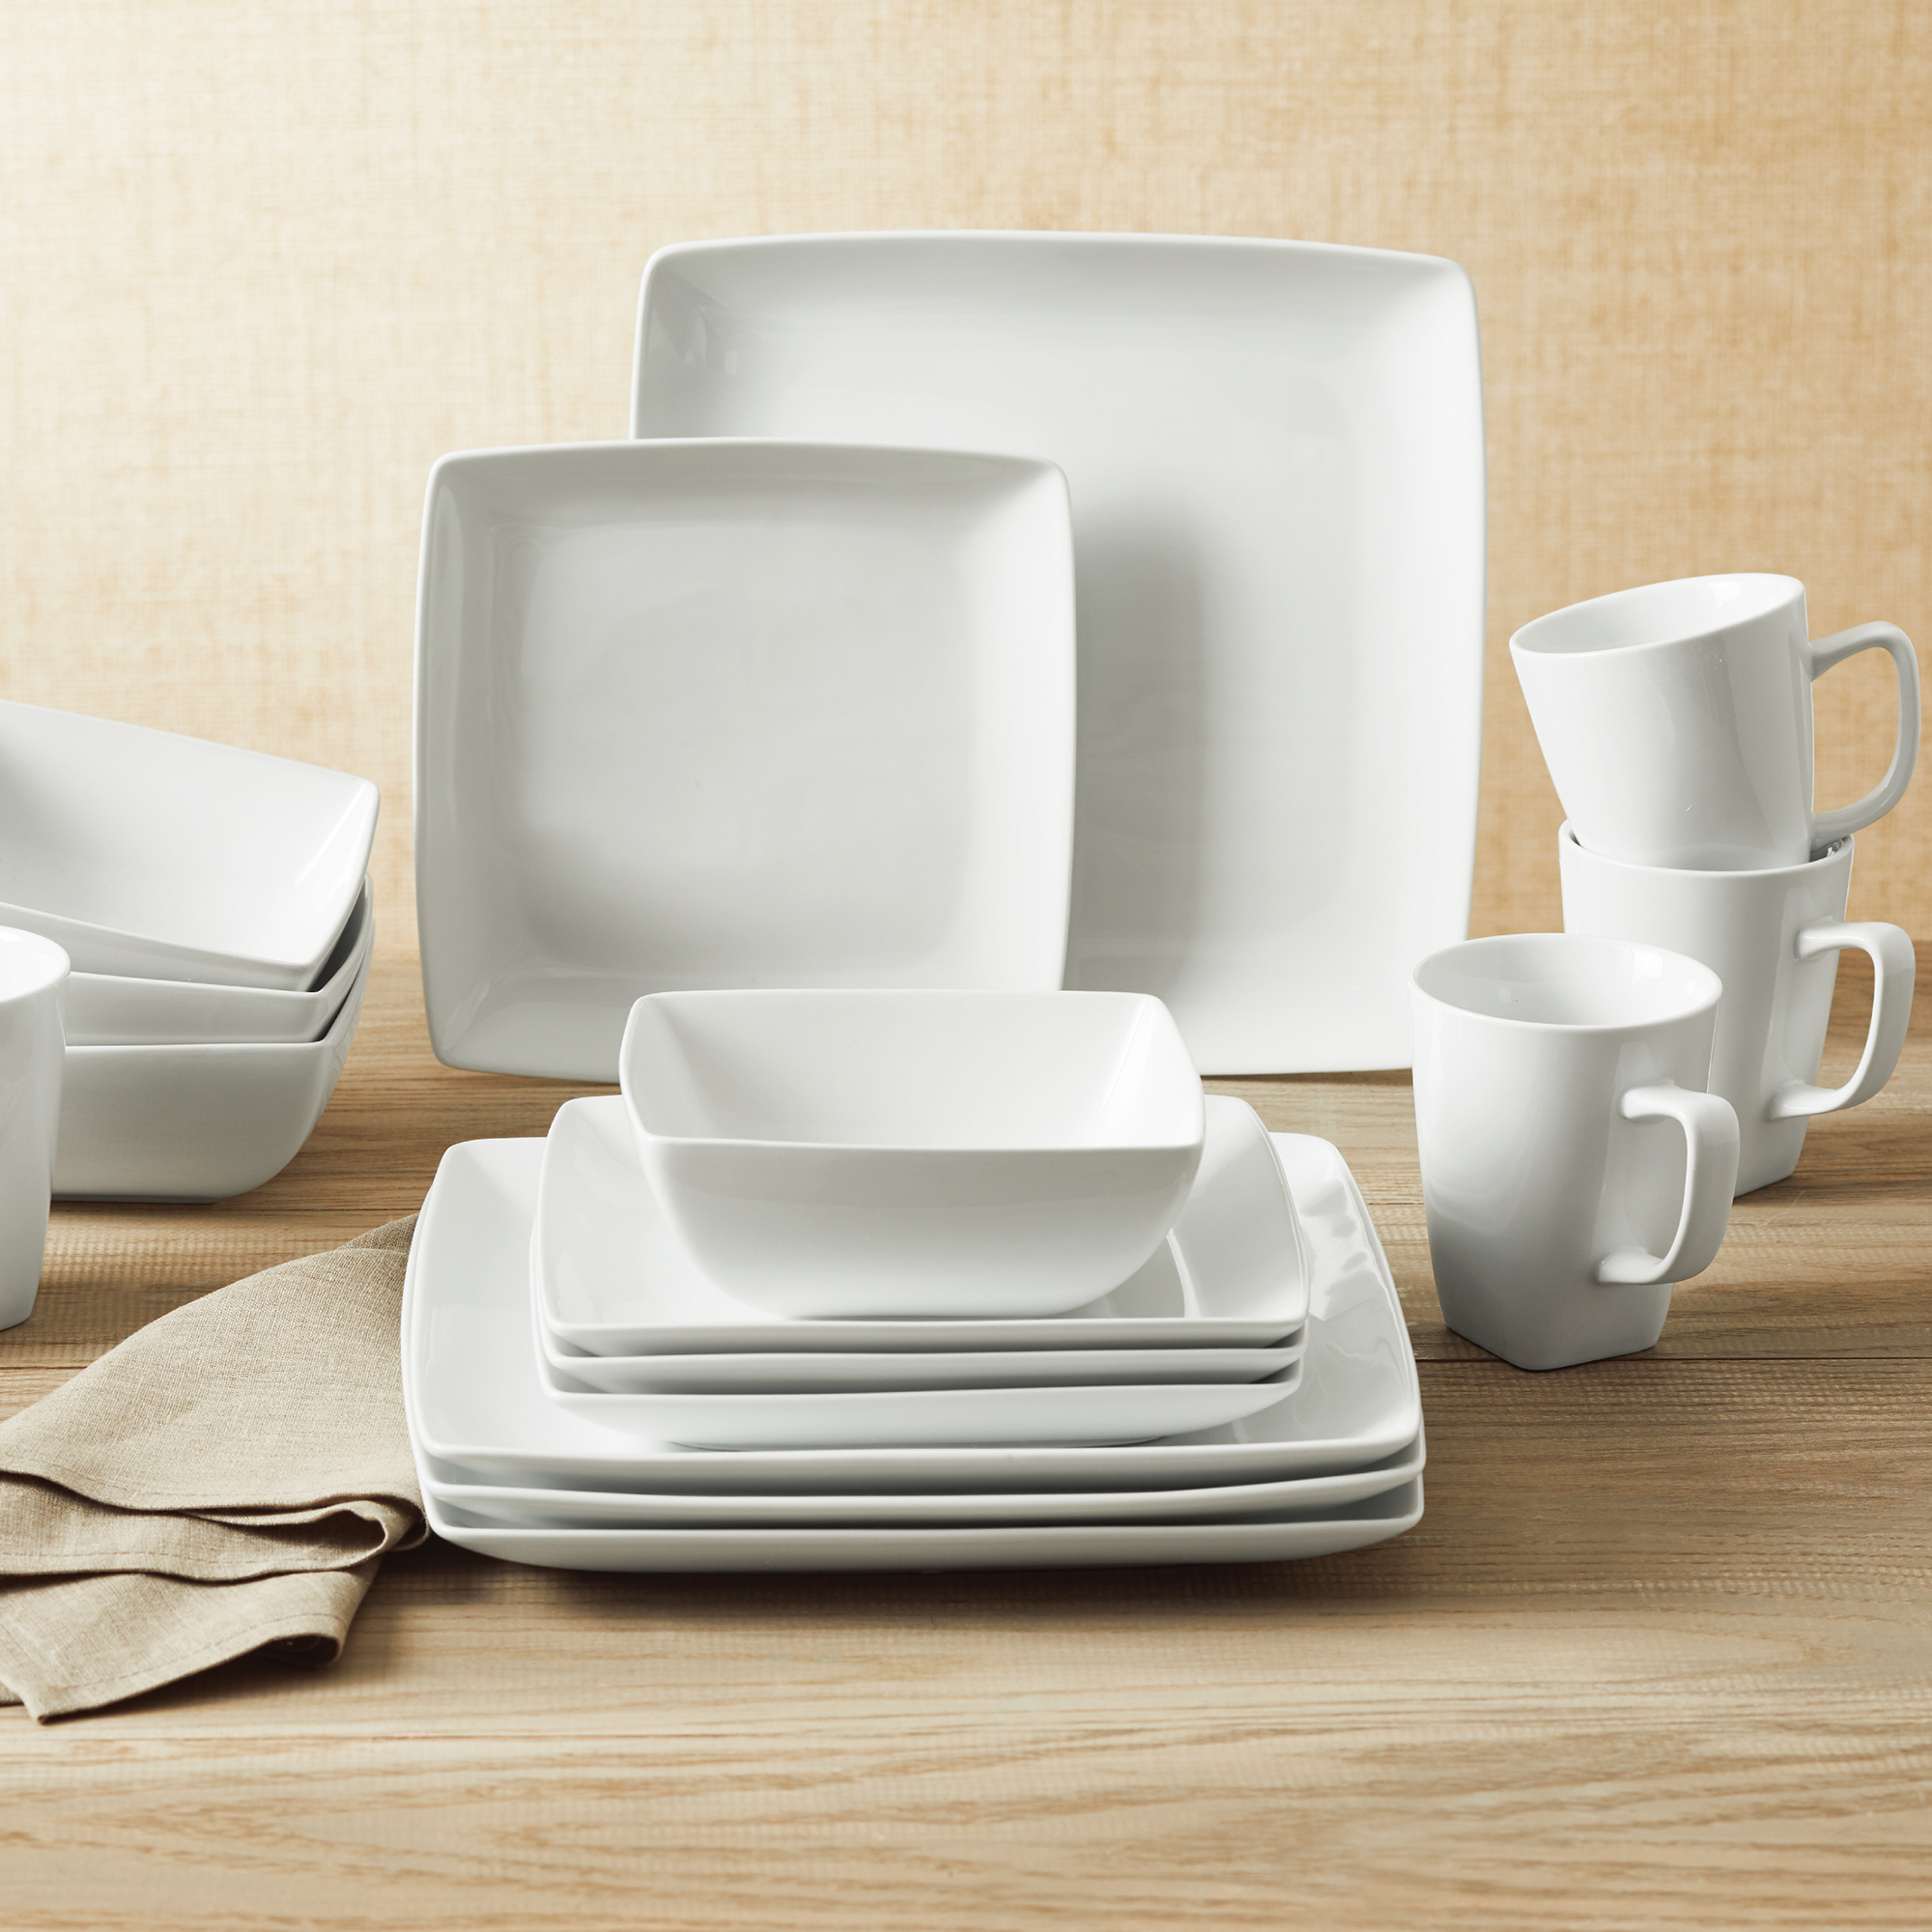 Better Homes and Gardens Loden 16-piece Porcelain Coupe Square Dinnerware Set & Better Homes and Gardens Loden 16-piece Porcelain Coupe Square ...